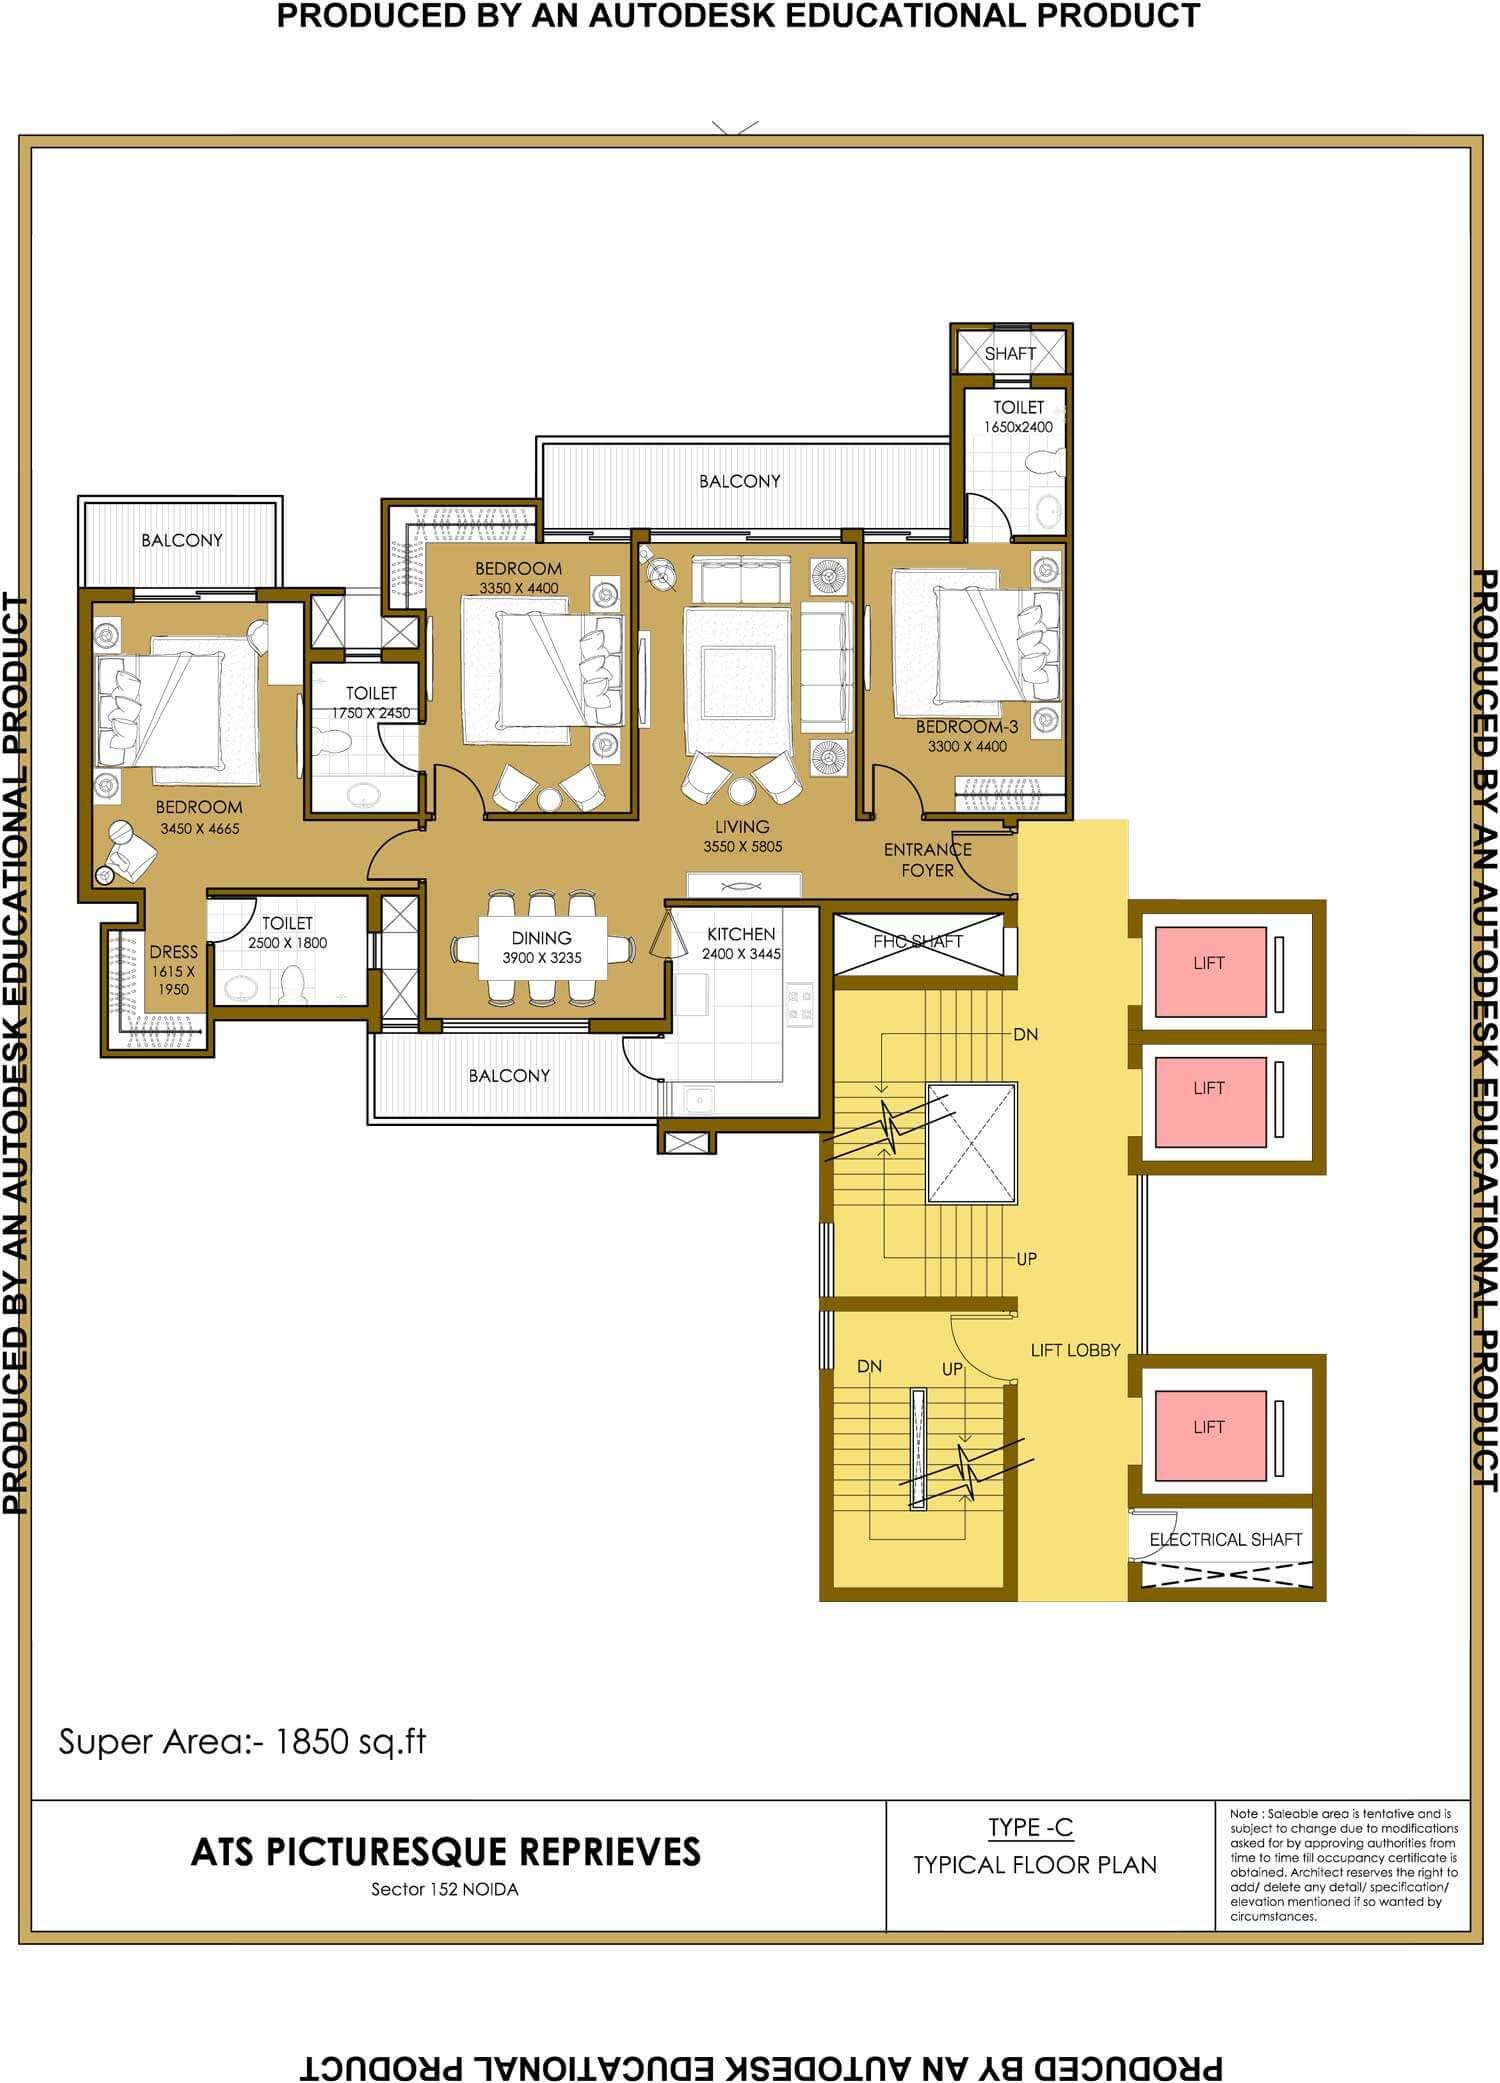 Ats Group 9899303232 Presents Residential Project Picturesque Reprievesin Sector 152 Noida Expressway Offers Bhk Apartments